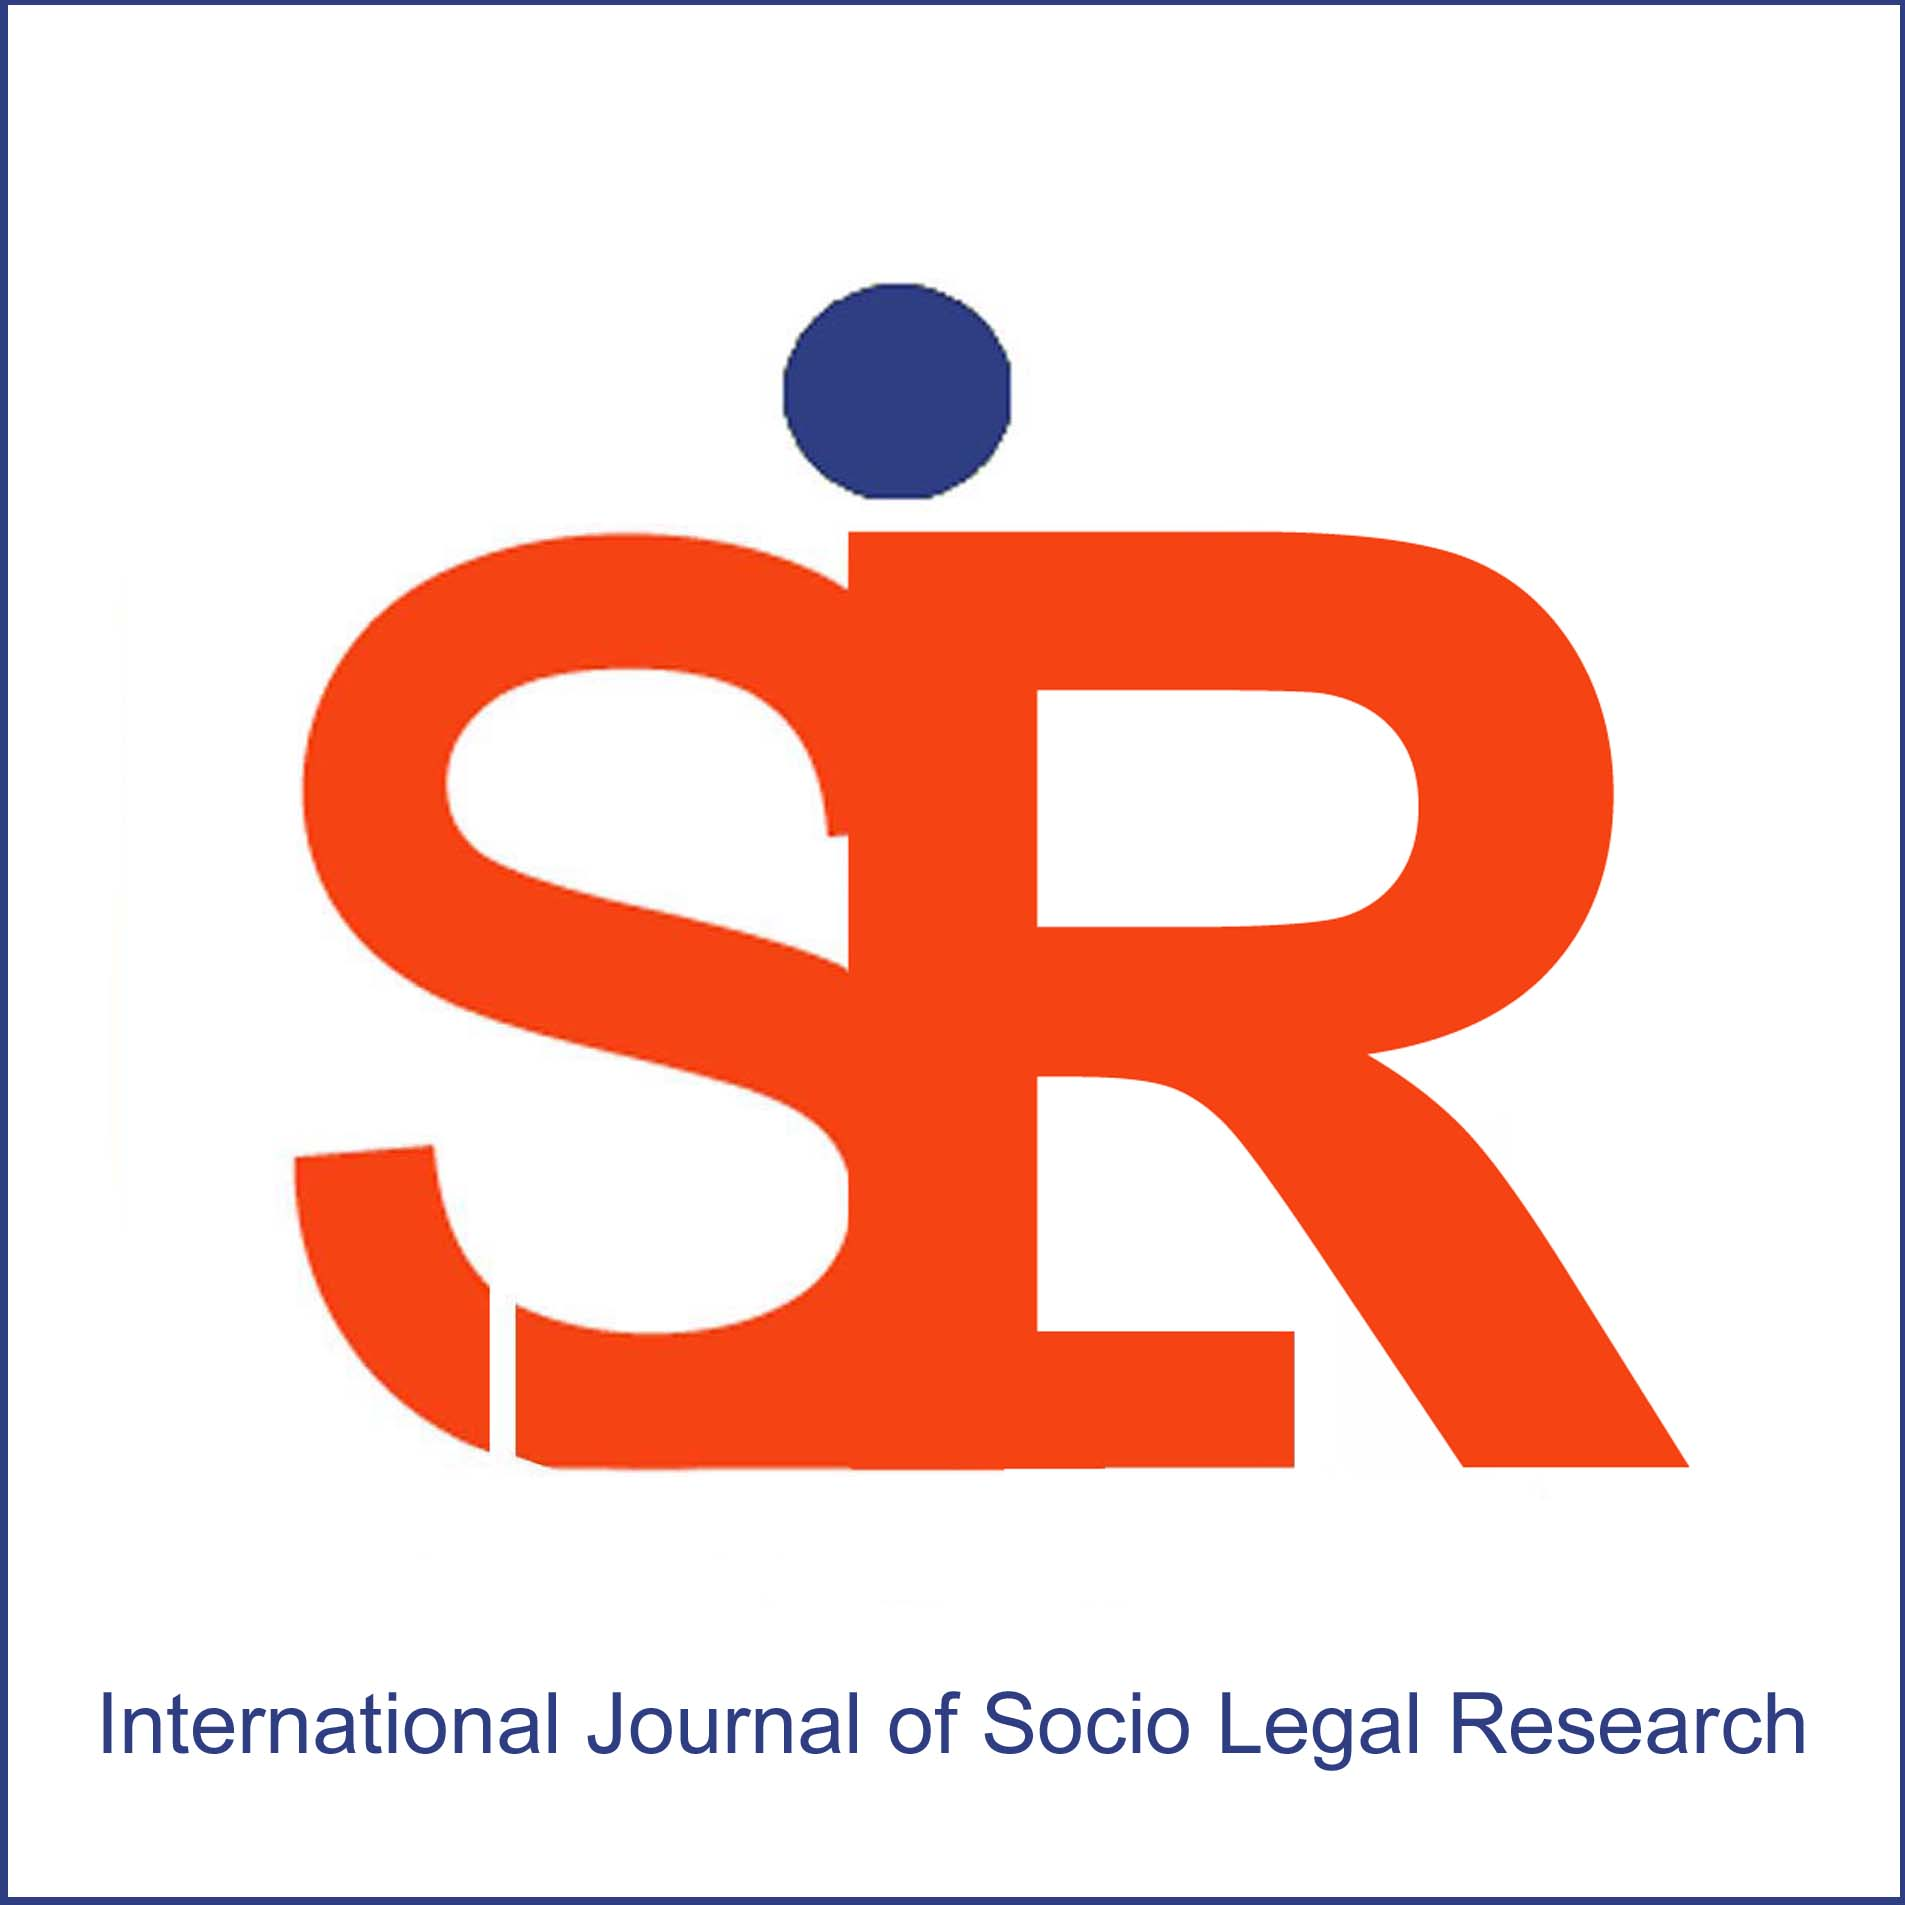 Call for Papers: International Journal of Socio-Legal Research Volume 3, Issue 3: Submit by June 5